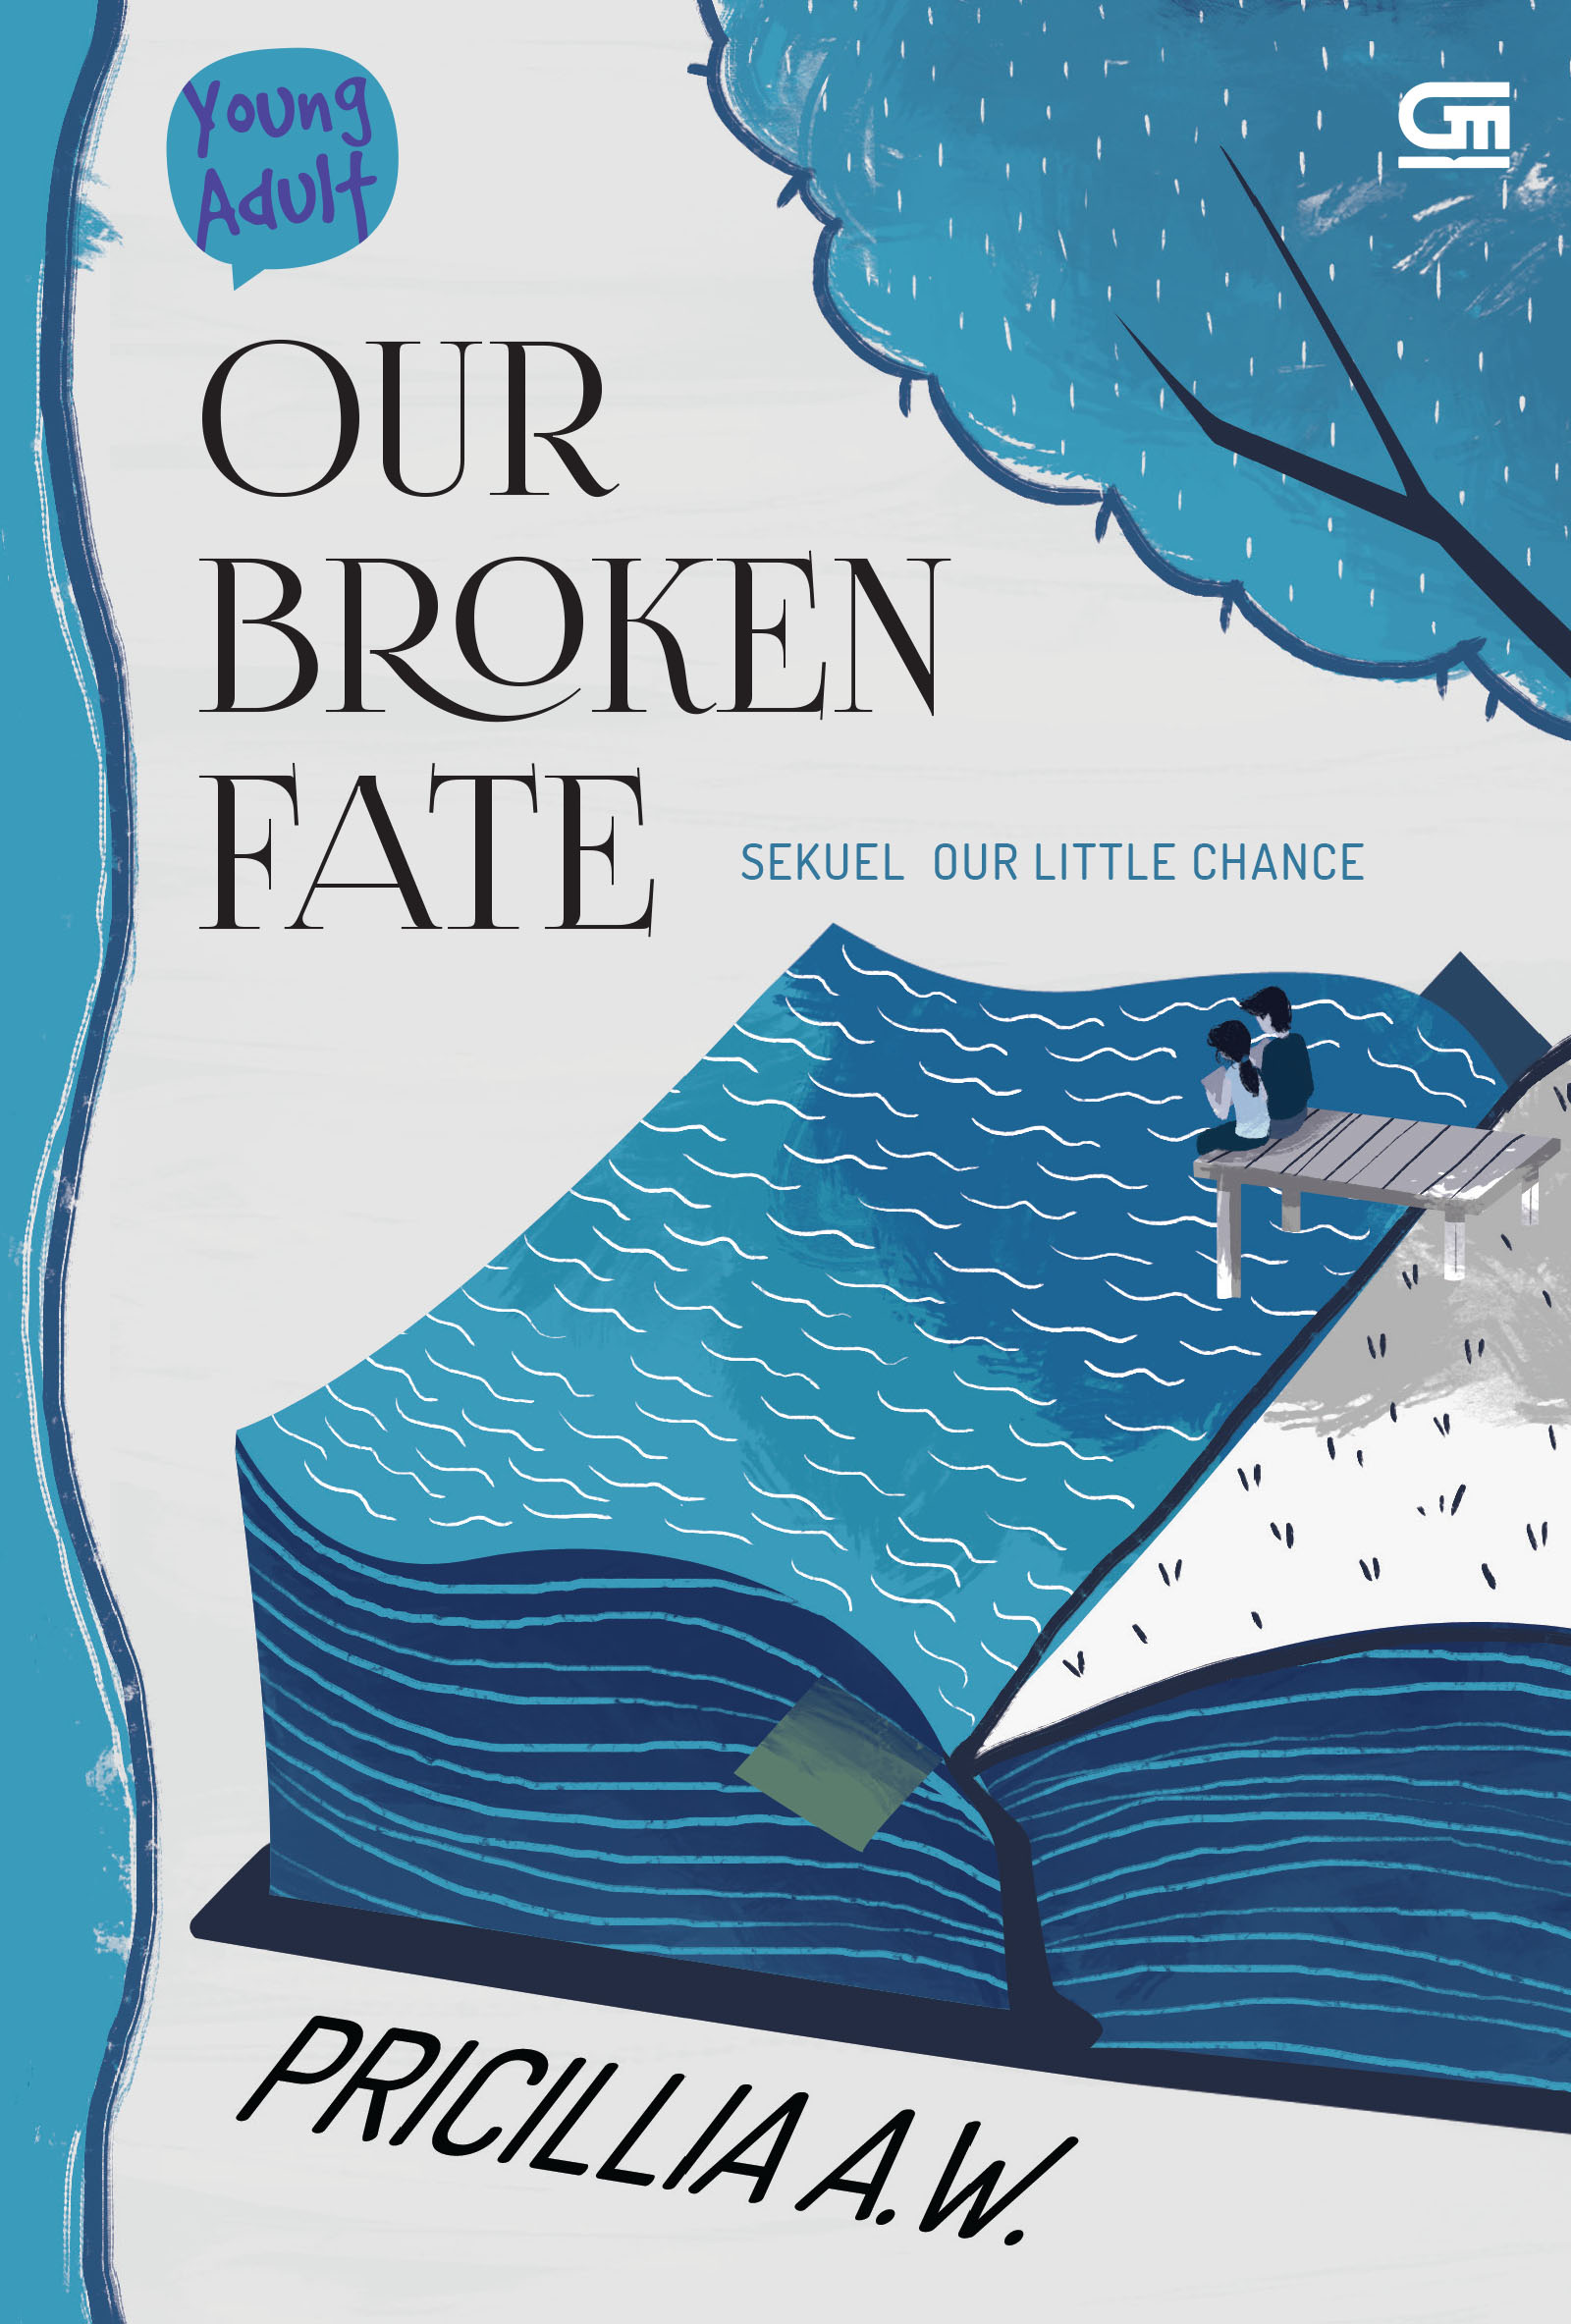 Young Adult: Our Broken Fate